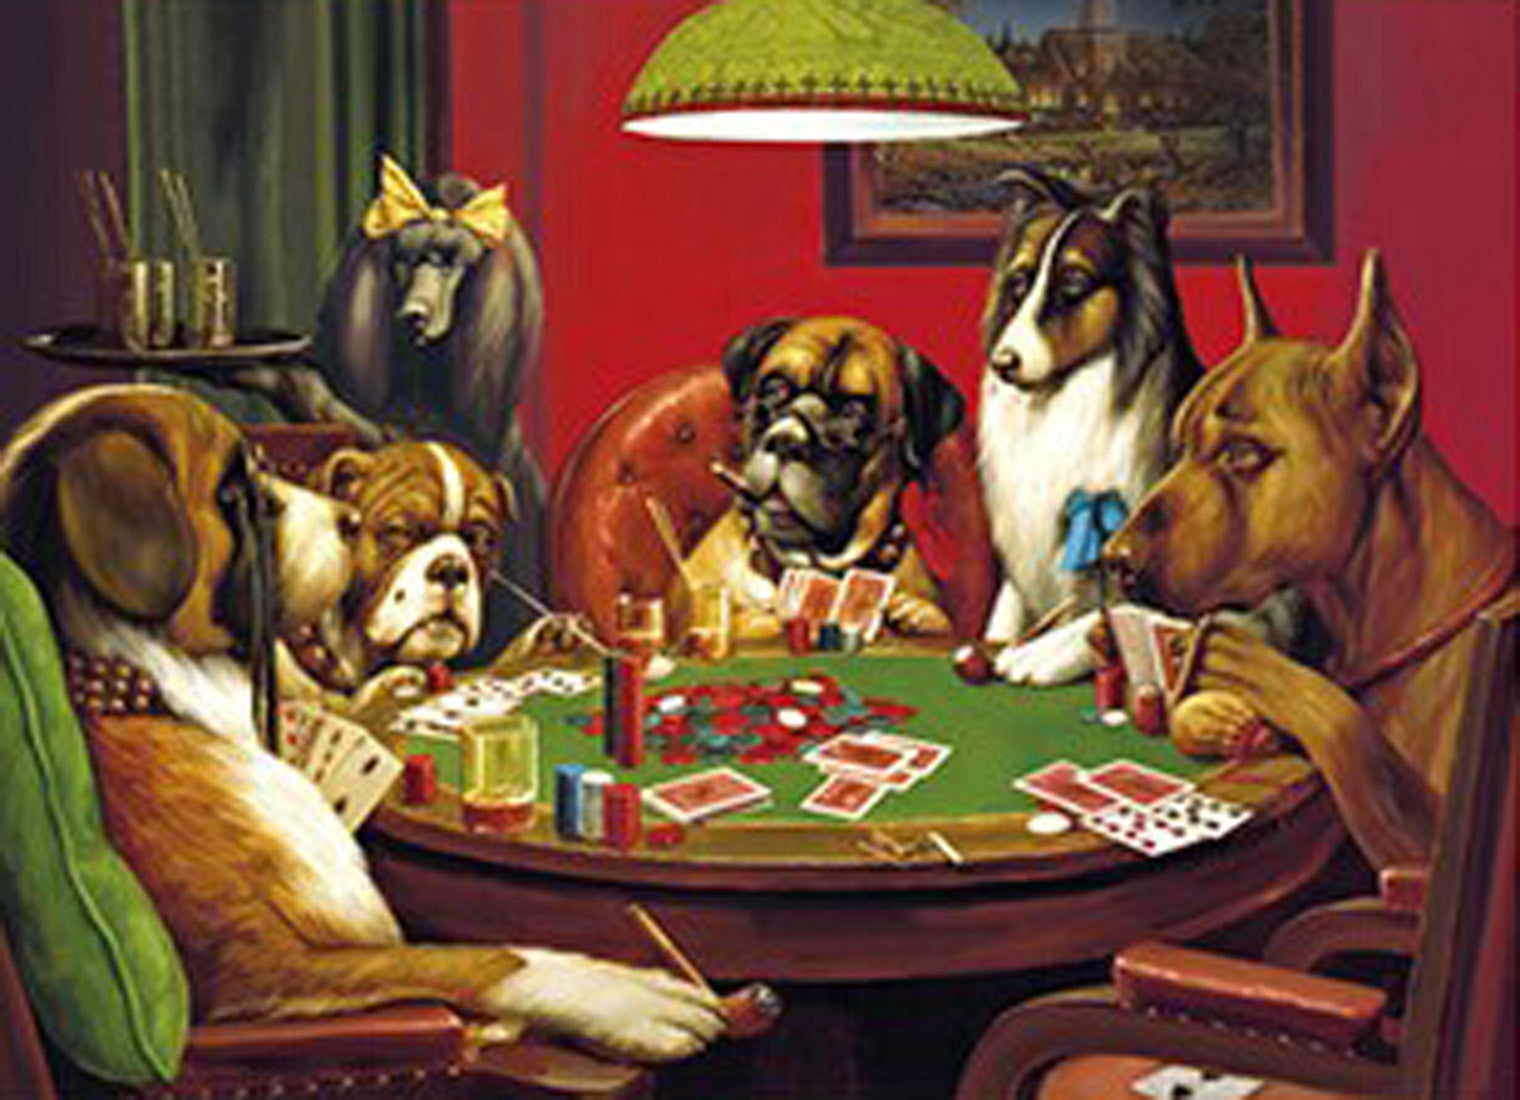 Poker dogs picture for sale gambling meaning in hindi